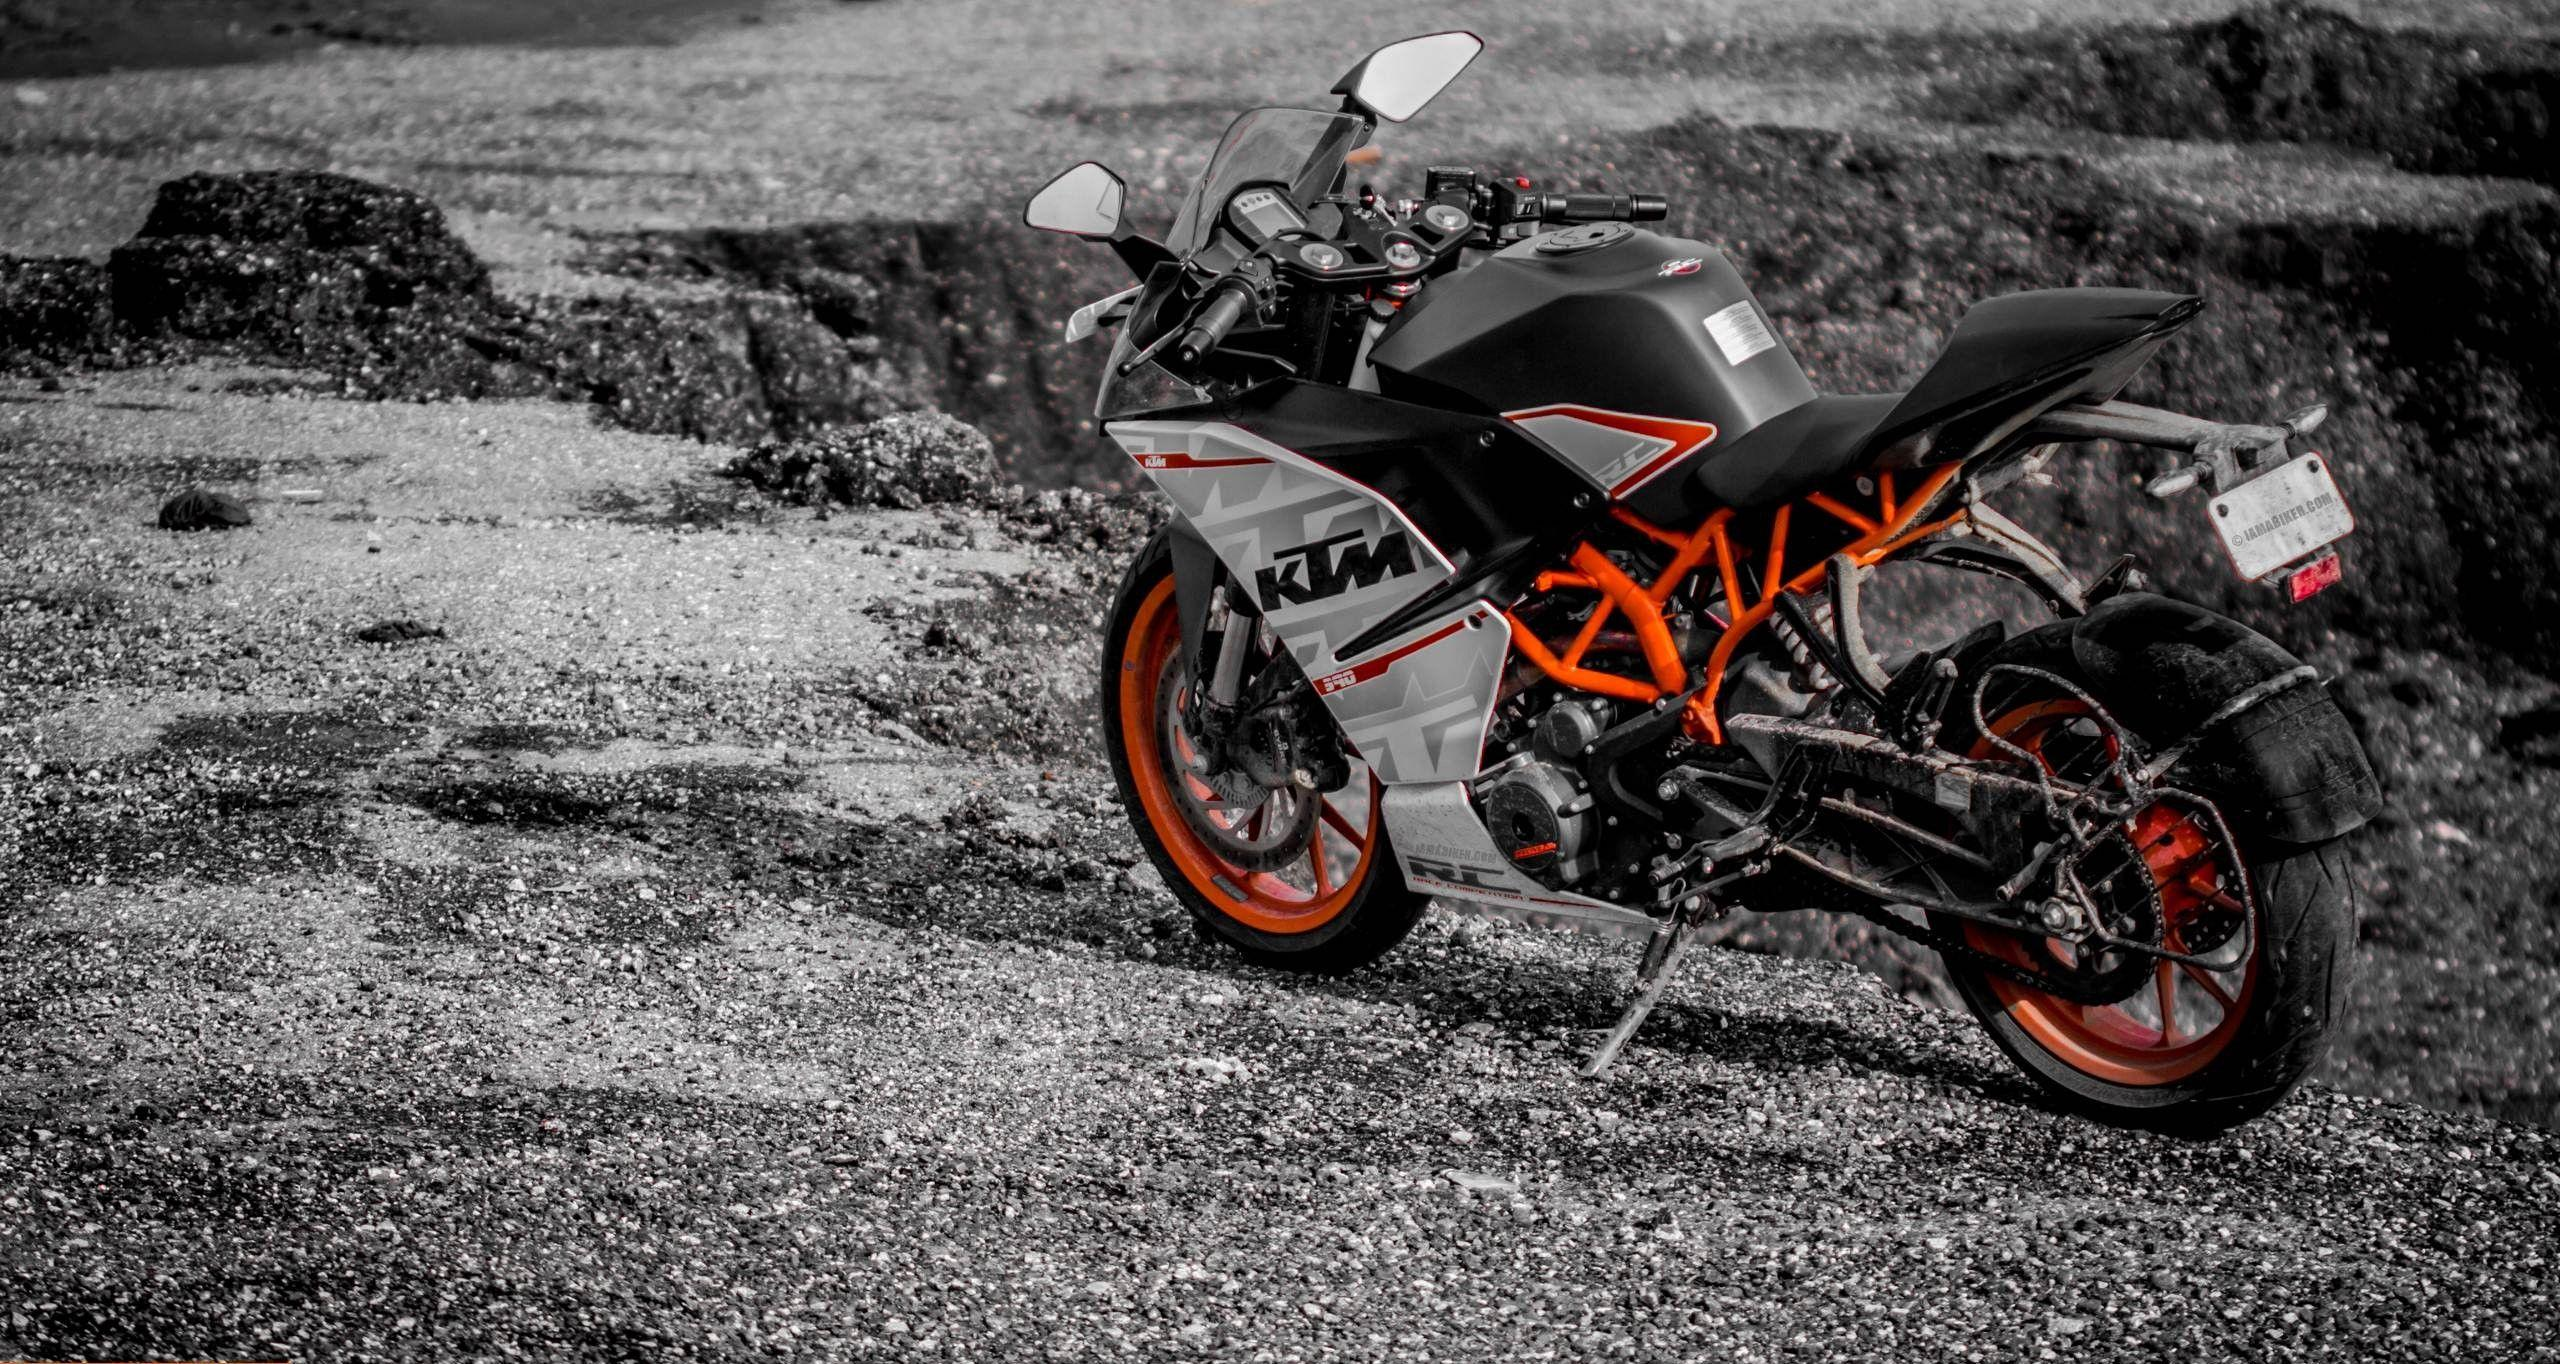 Lates KTM Bikes HD Wallpapers Pictures and Image Download